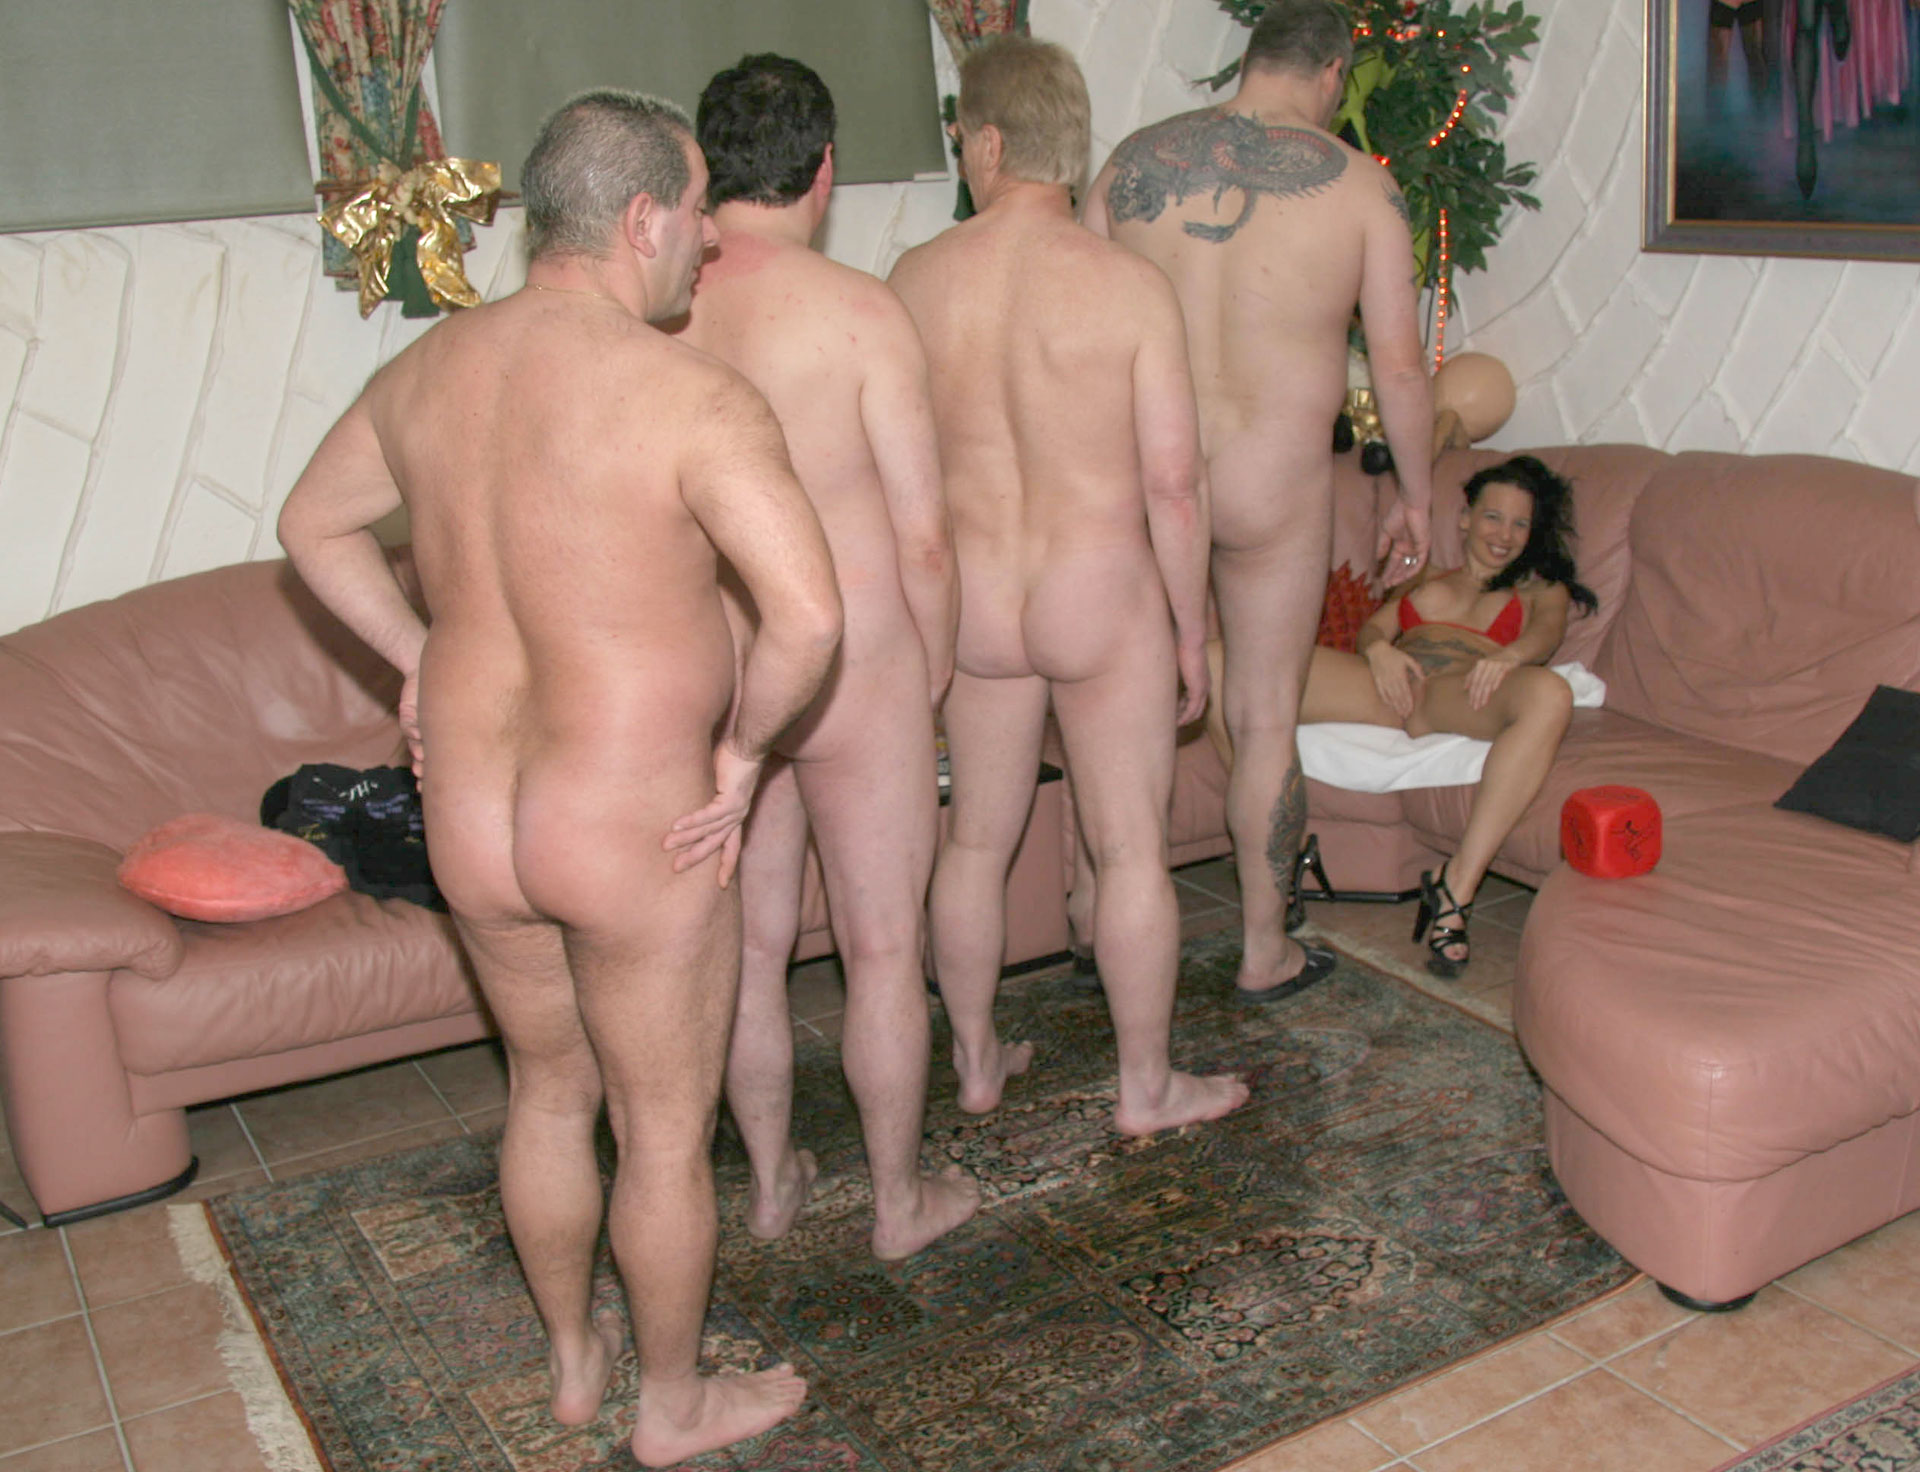 swingers gangbang thai massage stavanger